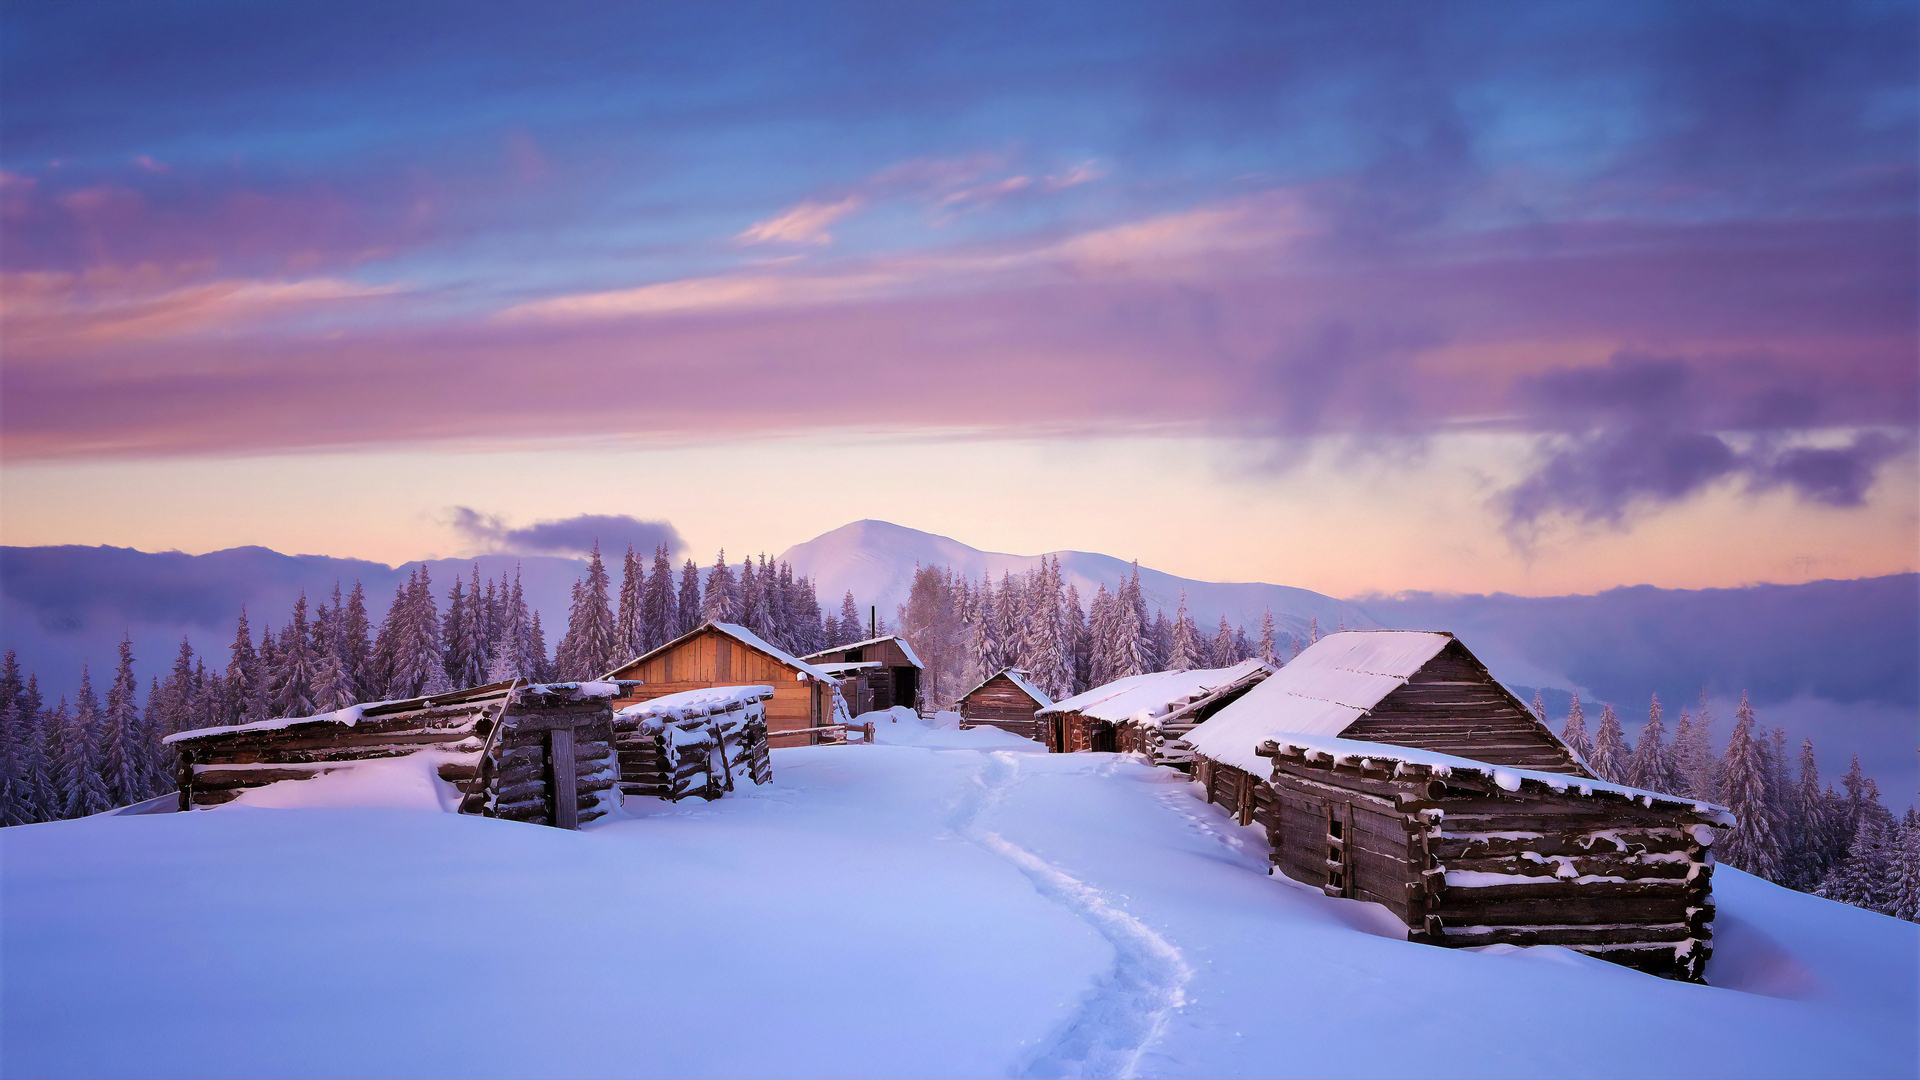 huts-covered-in-snow-4k-d2.jpg